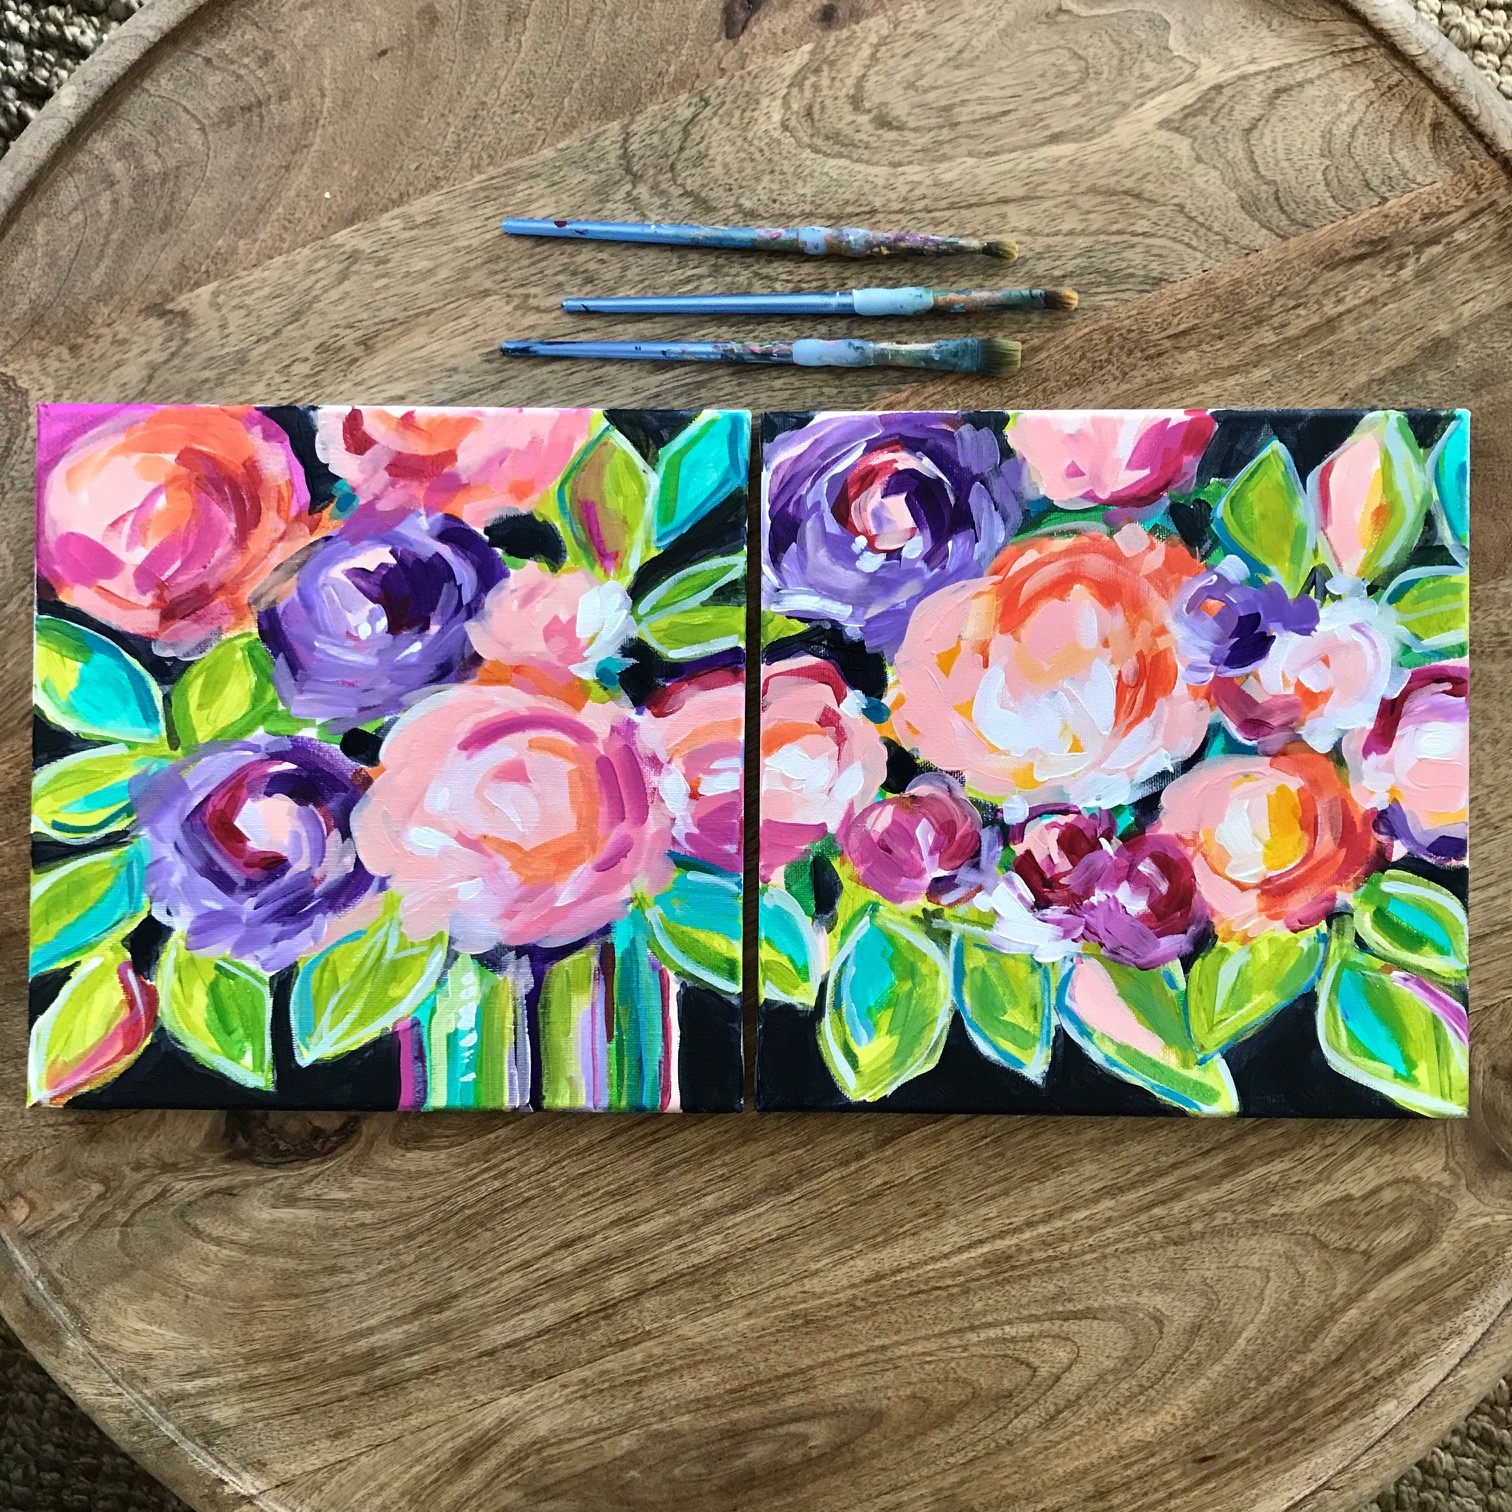 abstract flowers diptych elle byers.JPG